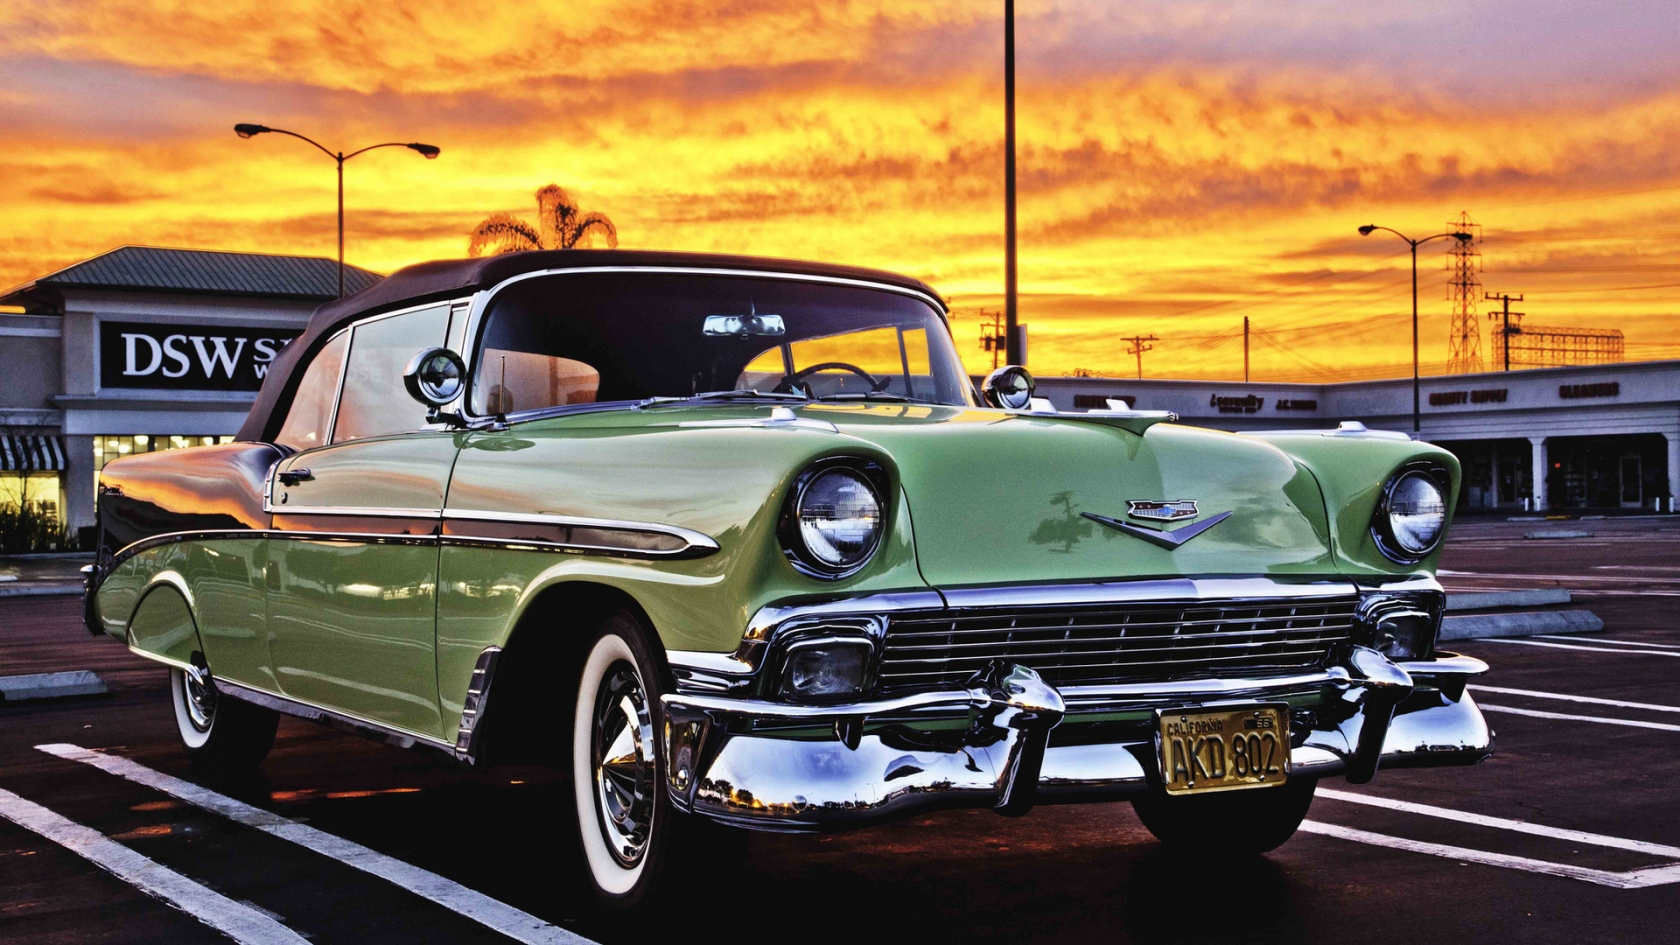 Green Classic Chevrolet for 1680 x 945 HDTV resolution